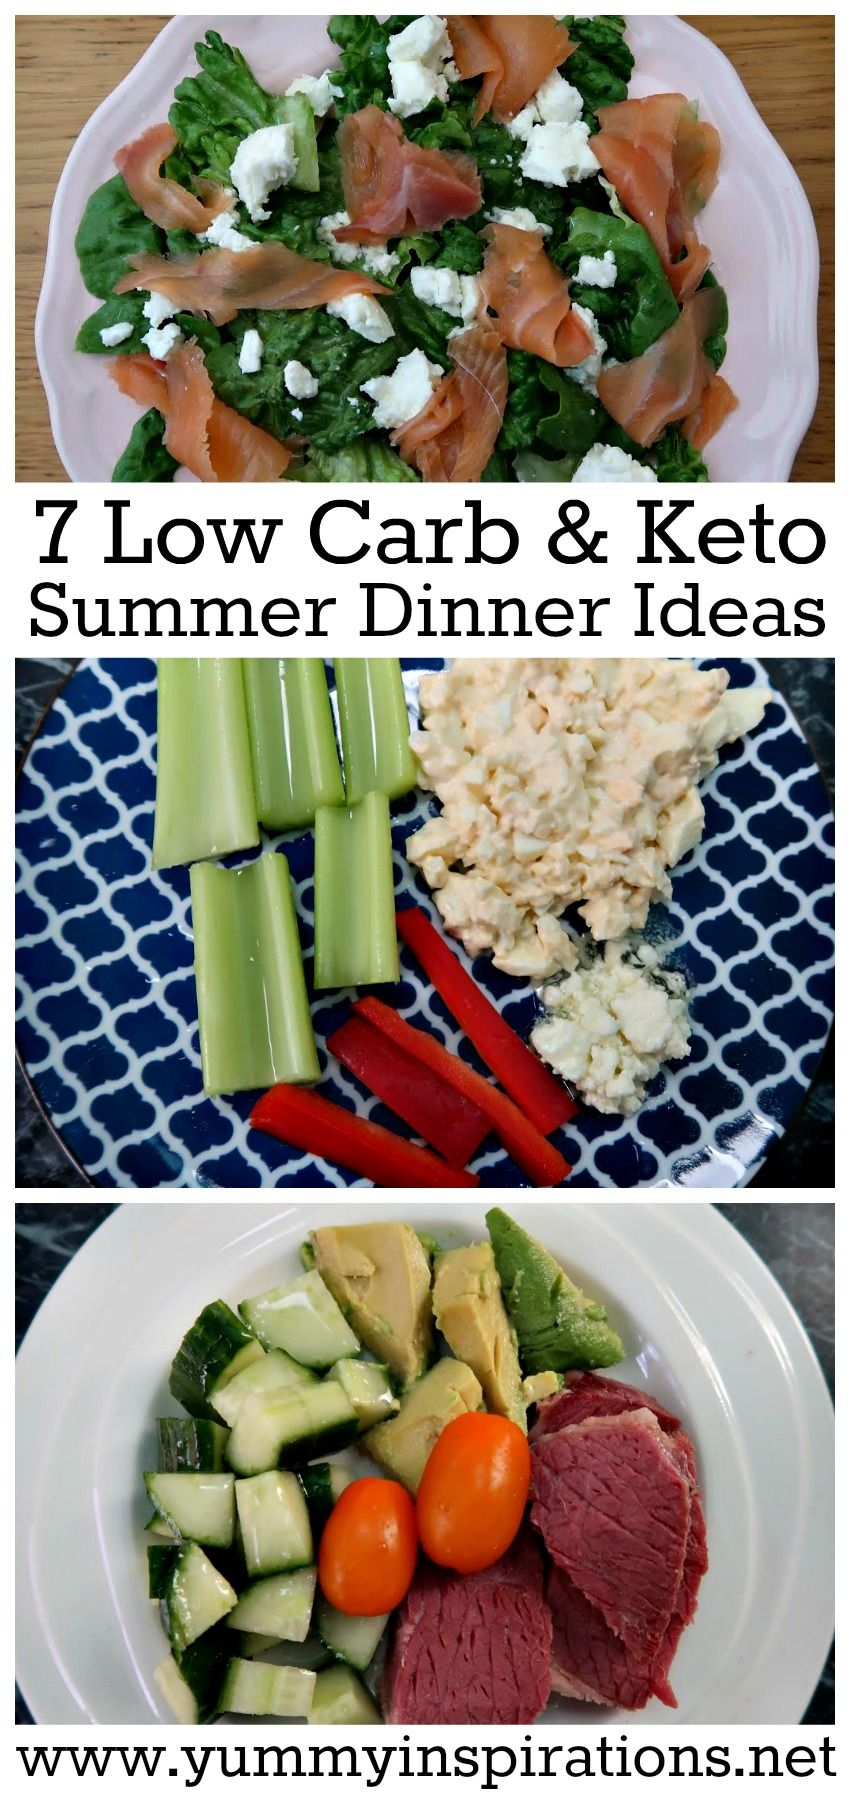 7 Keto Diet Low Carb Summer Dinner Recipes Ideas Keto And Low